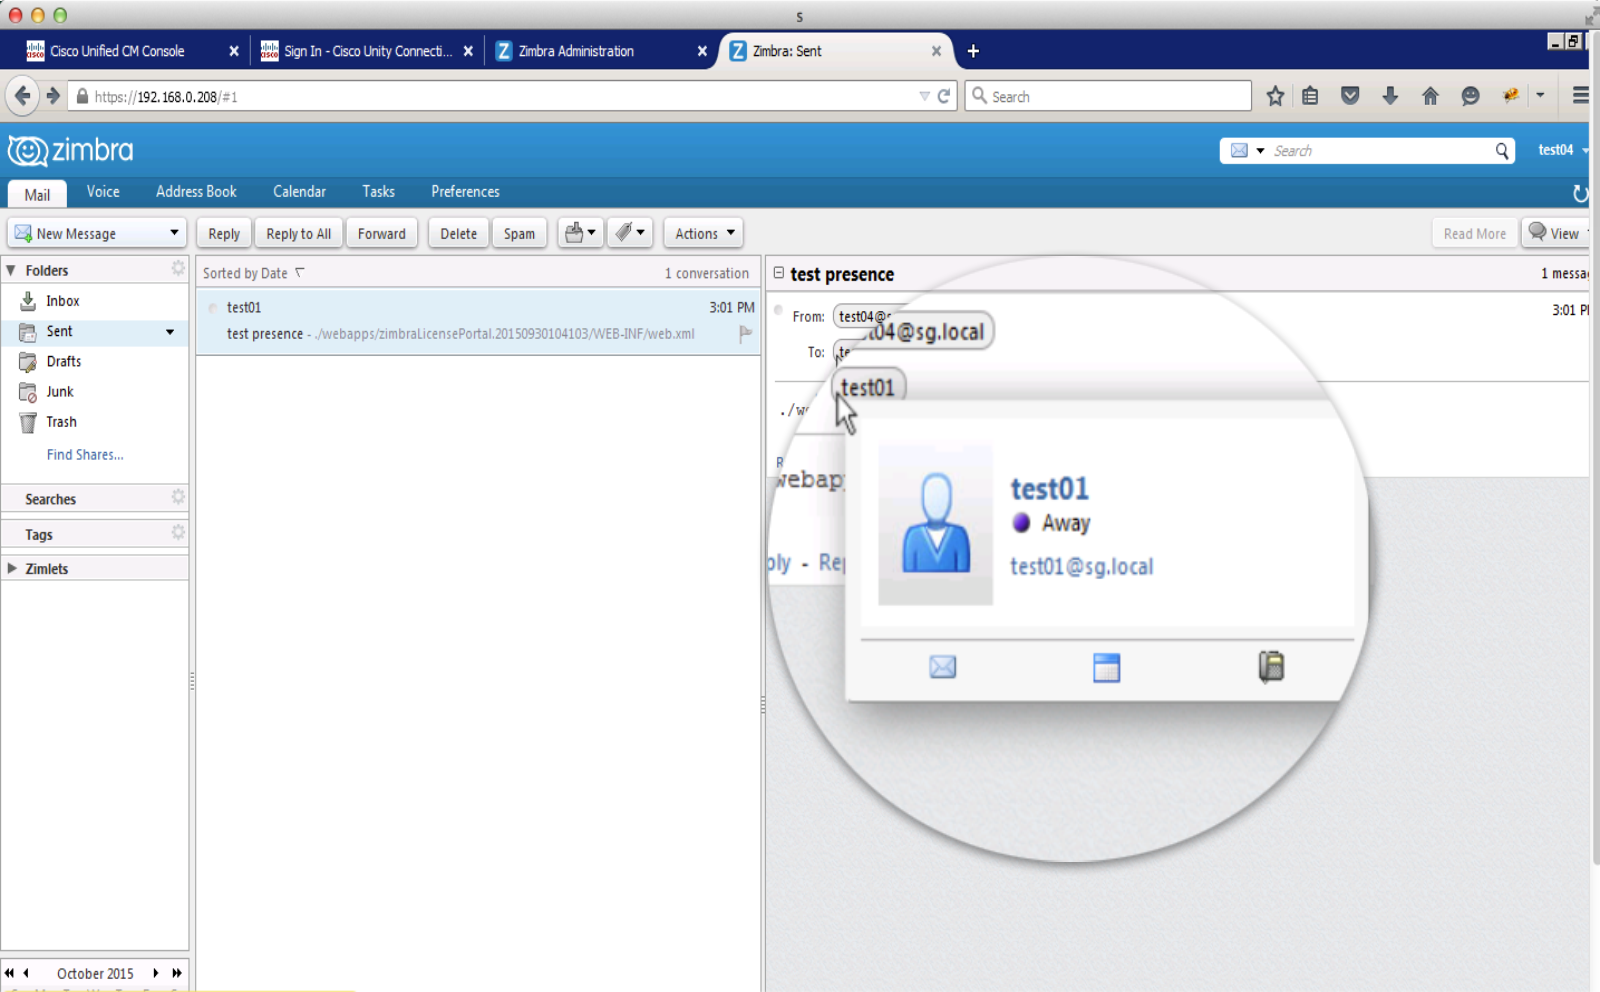 Integrated Unified Communications - Zimbra Email